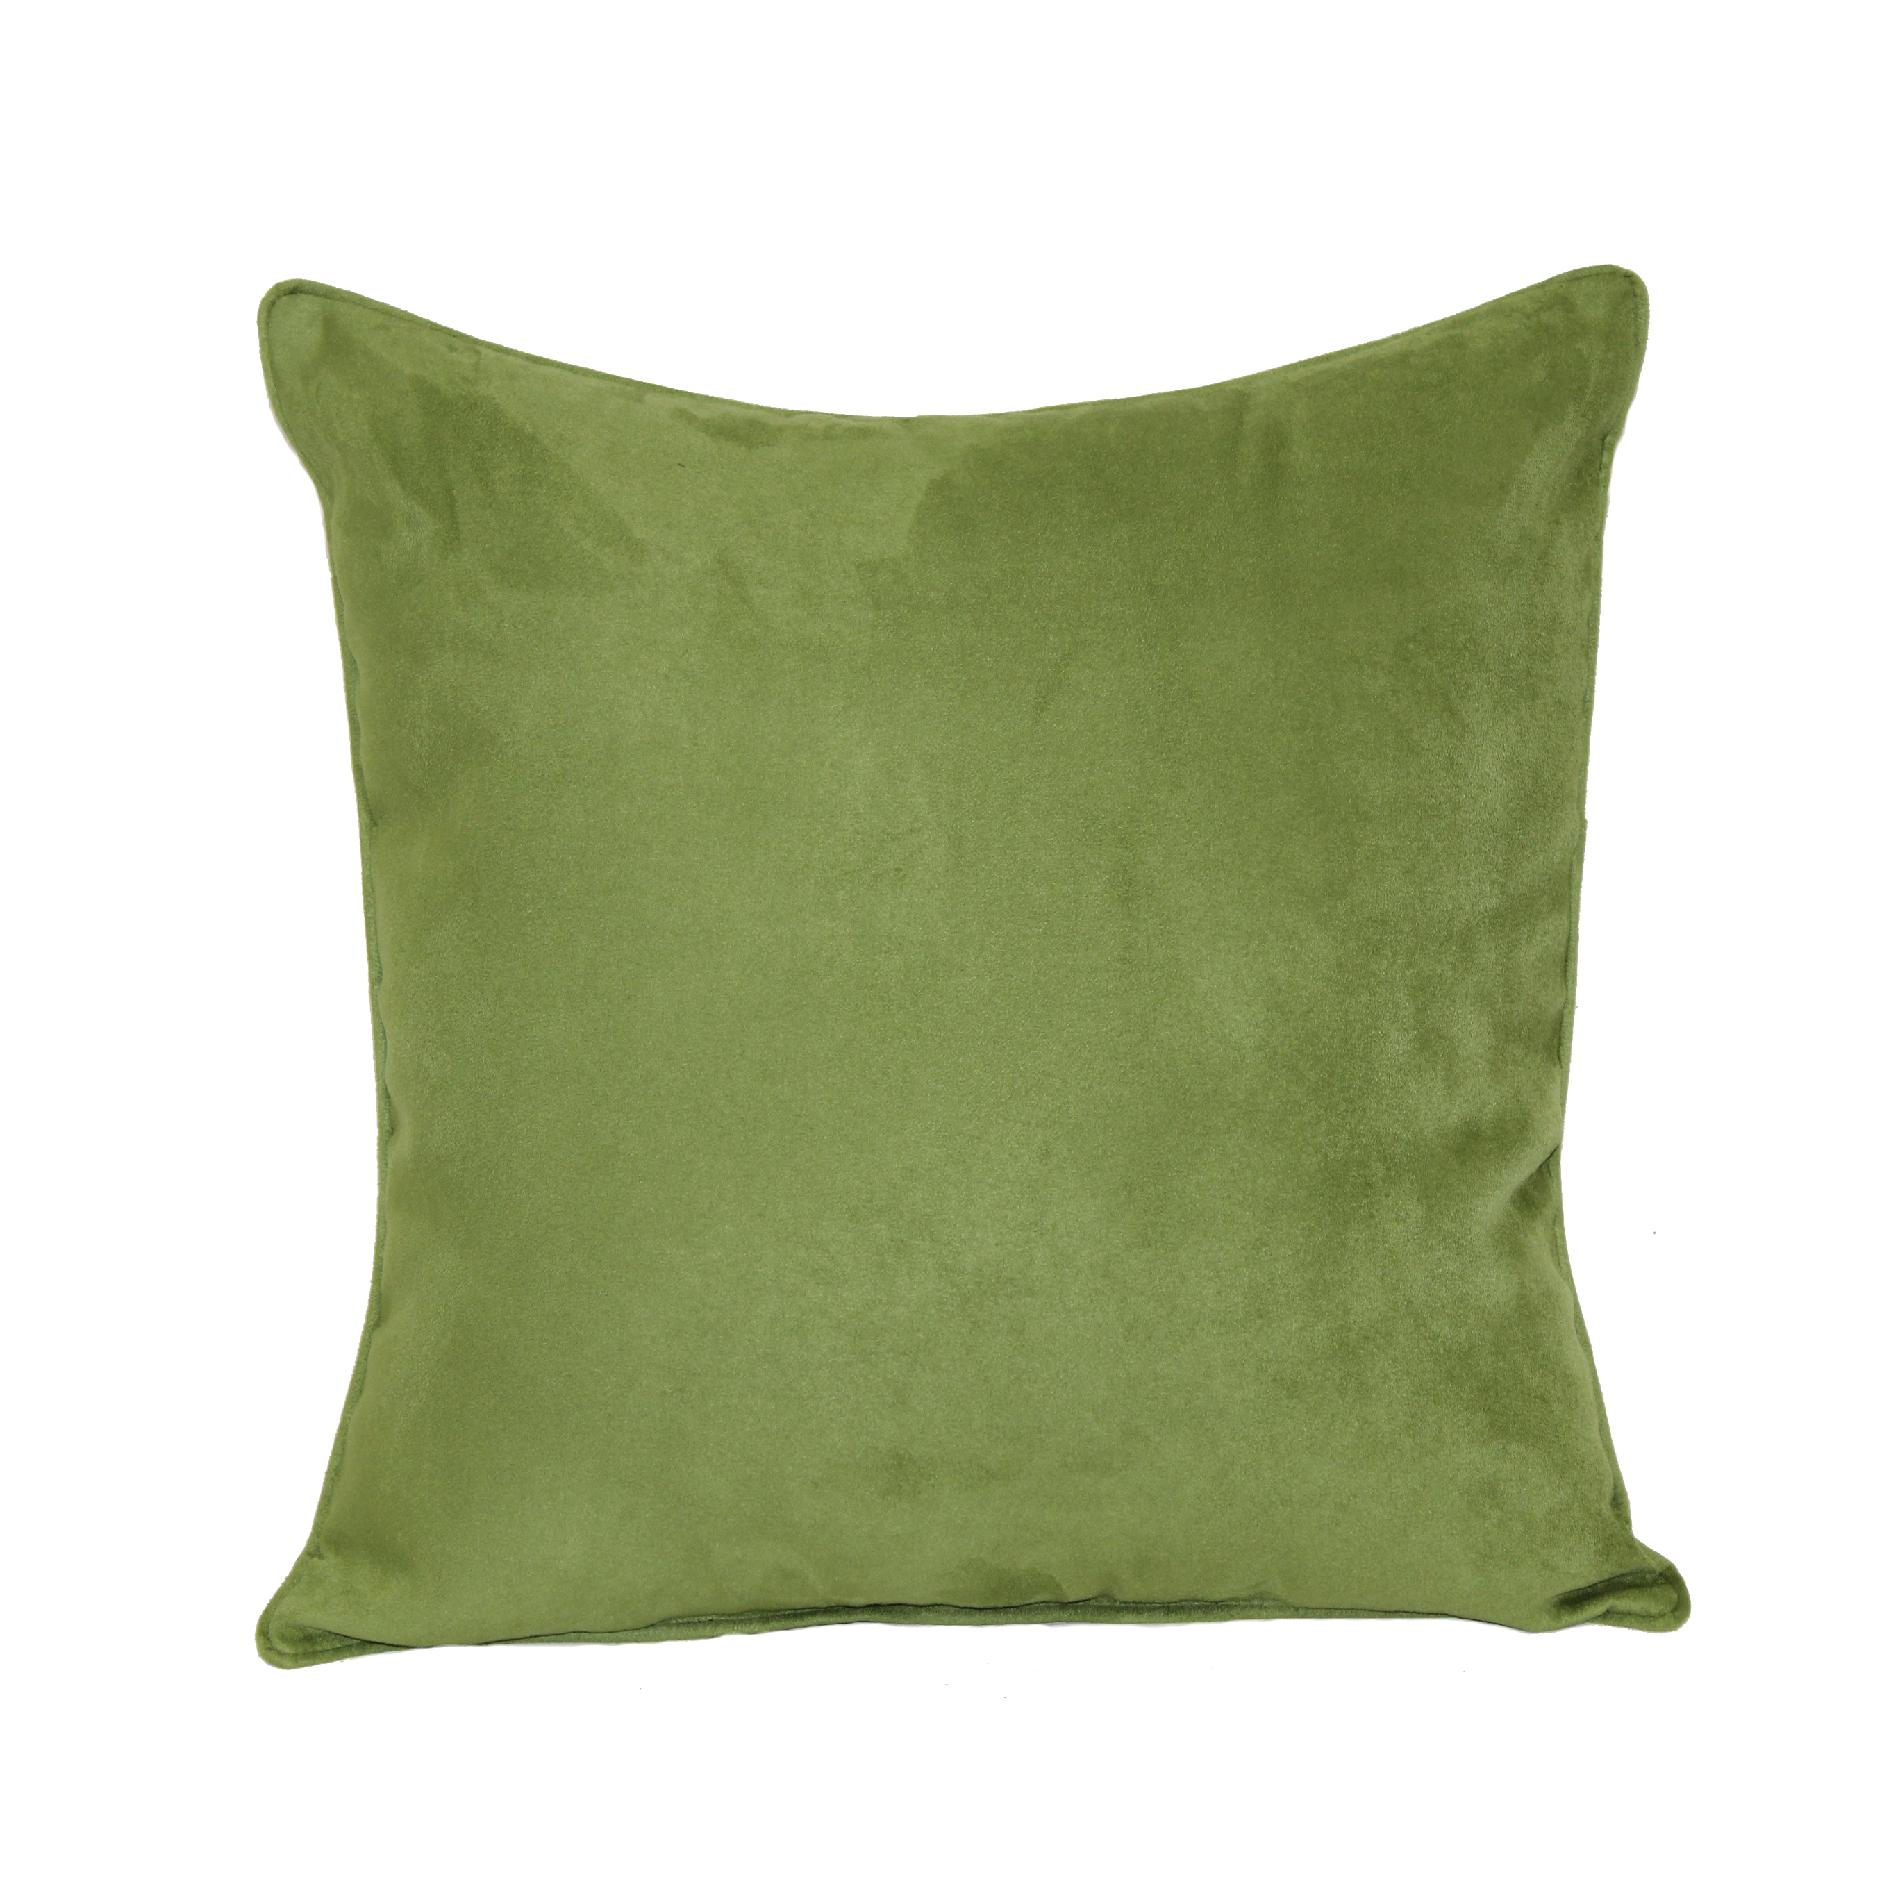 Find Sale Available In The Decorative Pillows Section at  : spinprod803786312 from www.sears.com size 1900 x 1900 jpeg 240kB